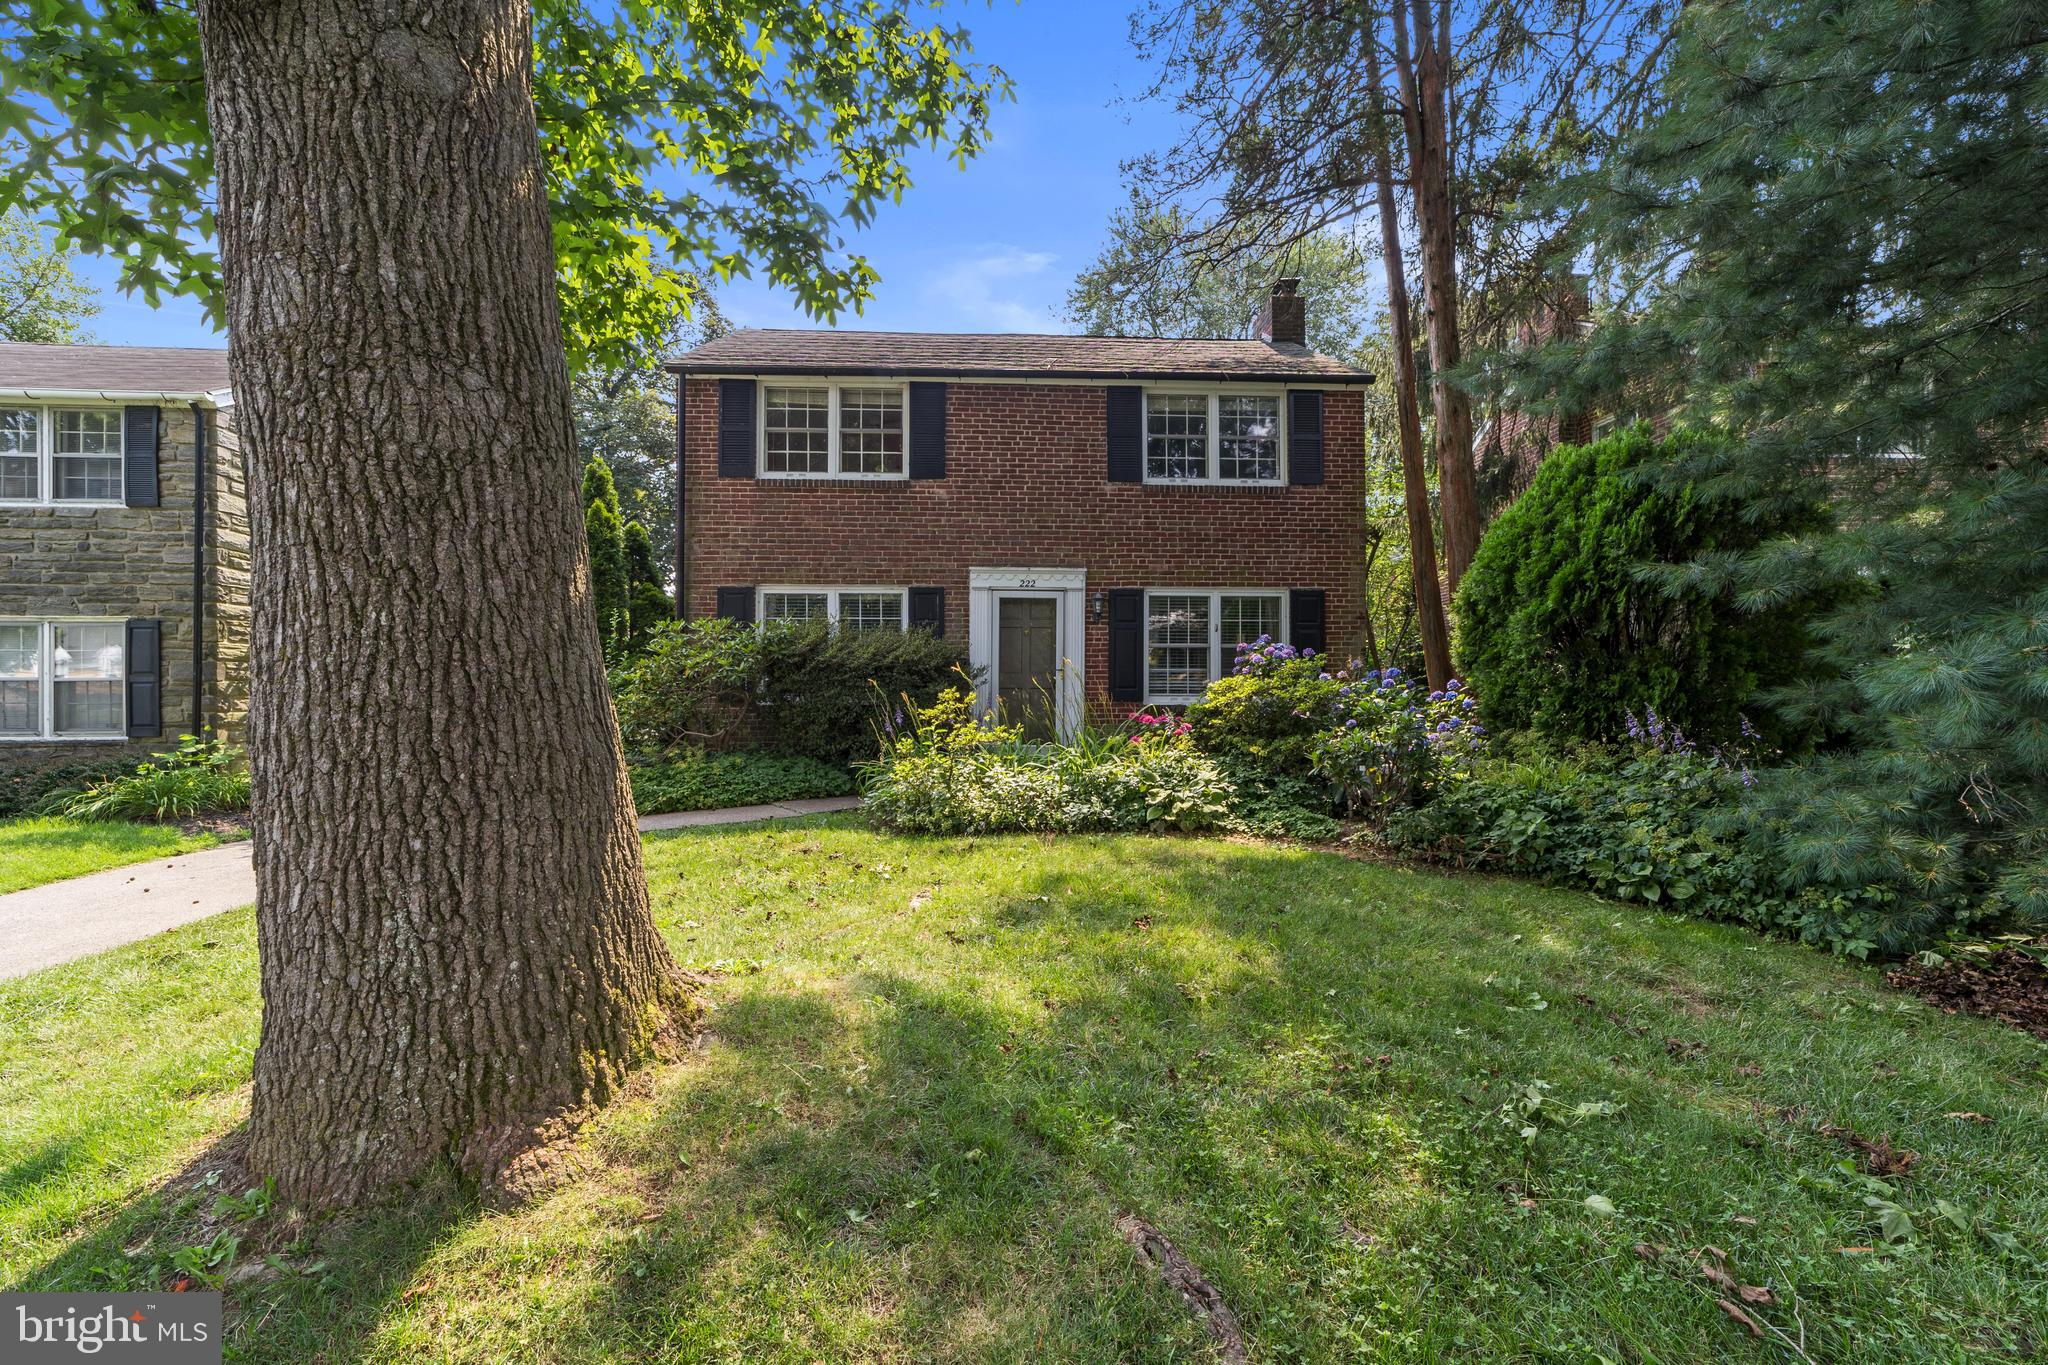 Come make family memories in this beautiful brick colonial peacefully situated in the highly sought after Penn Wynne section of Wynnewood. A short walk to the Blue Ribbon School of Excellence, Penn Wynne Elementary, the public library and the beautiful Wynnewood Valley Park, you will love life at 222 Harrogate Road. From the moment of entry you will be captivated by the appeal and charm of this home. Relax in the spacious living room with a wood-burning fireplace and built-in book shelves. Behind the living room you'll find the home office with views of the rear yard, or flex-space open to possibilities. To the left is the dining room open to the kitchen. You will love serving breakfast on the kitchen's breakfast bar. Off the kitchen you'll find the mudroom with plenty of built-in storage, a desk and cubbies. Step out the mudroom door to a paver patio and nicely sized rear yard, where you can enjoy bbq's and dinner al fresco.  On the second floor you will find the primary bedroom with a spacious walk-in closet, 2 additional nicely sized bedrooms, and an updated tiled bathroom. Pull down stairs lead you to a floored attic with tons of storage space. Set-up your home gym or playroom/family in the finished basement.  You will also find the laundry area, half bath and tons of built-in storage space. Hardwood floors throughout the home and plenty of natural light. New hot water heater and dishwasher in 2020, new gas range in 2019, new washer & dryer in 2020. Close to dining, shopping, public transportation, and Center City. All this is located in the award-winning Lower Merion School District!